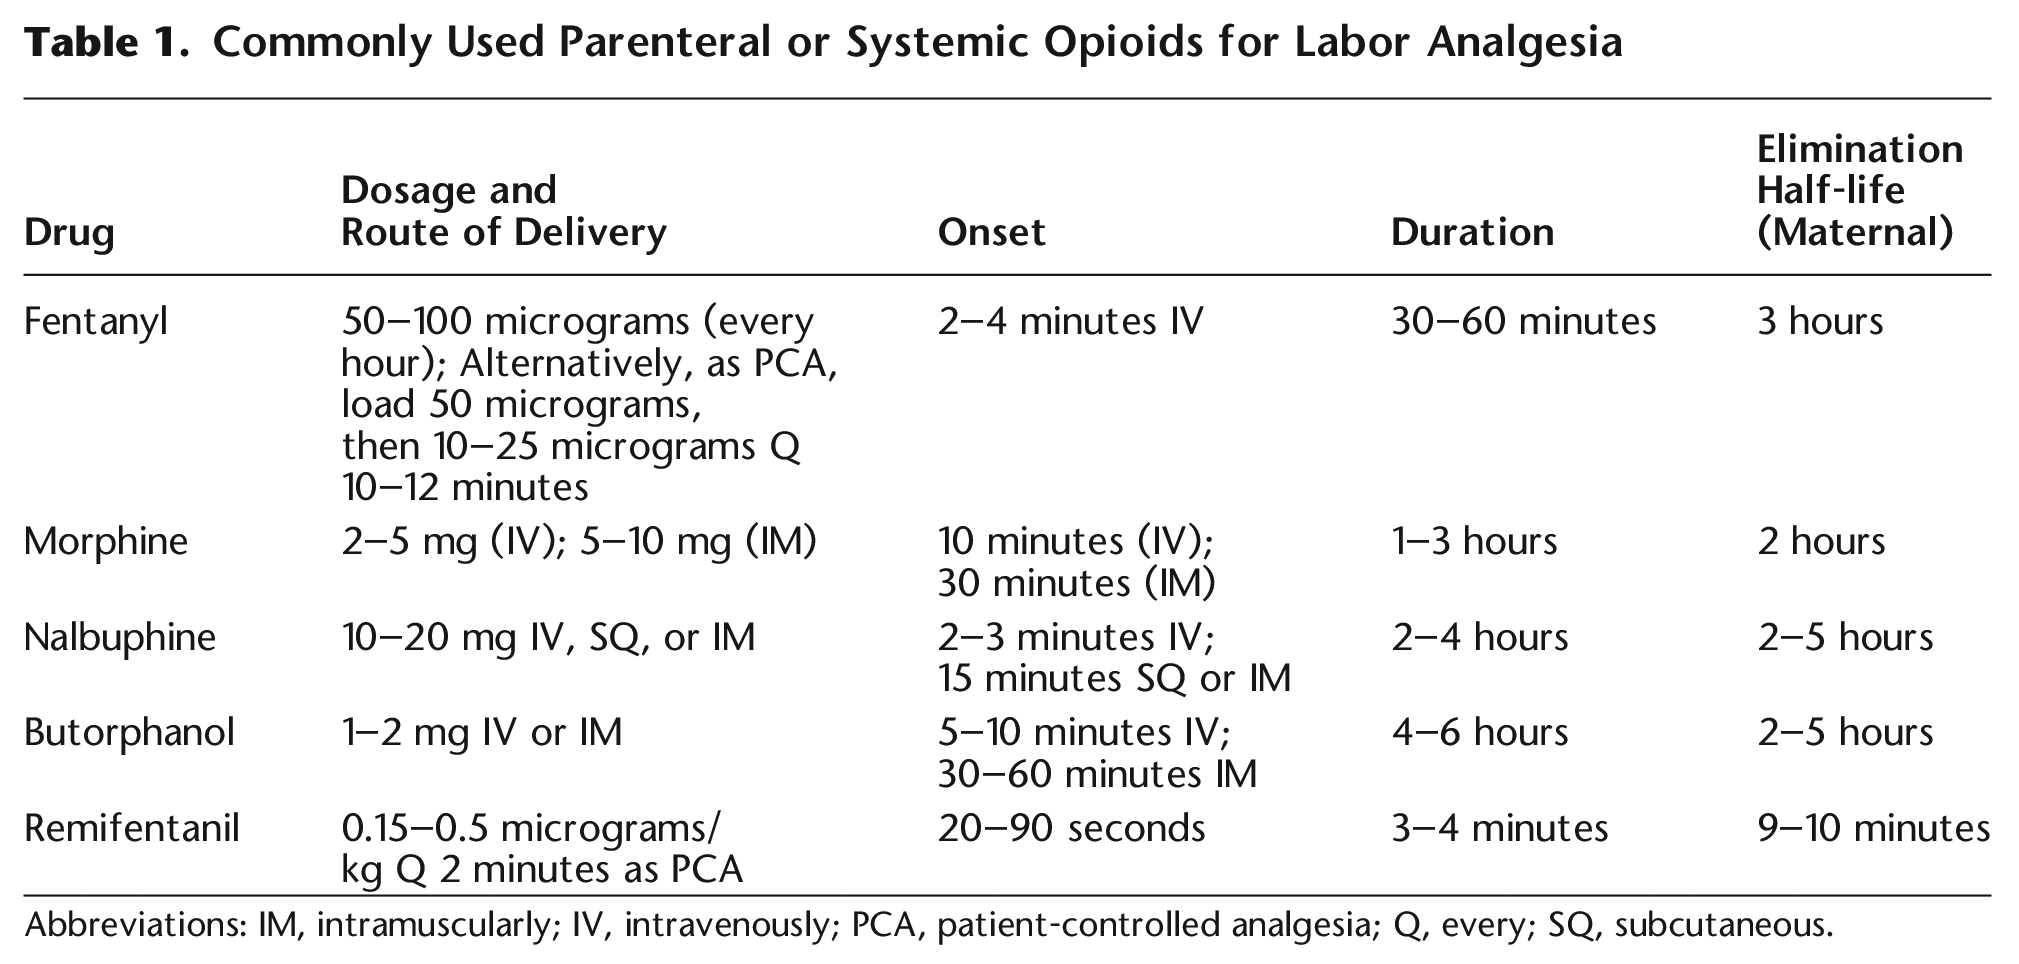 Table 1. Commonly Used Parenteral or Systemic Opioids for Labor Analgesia